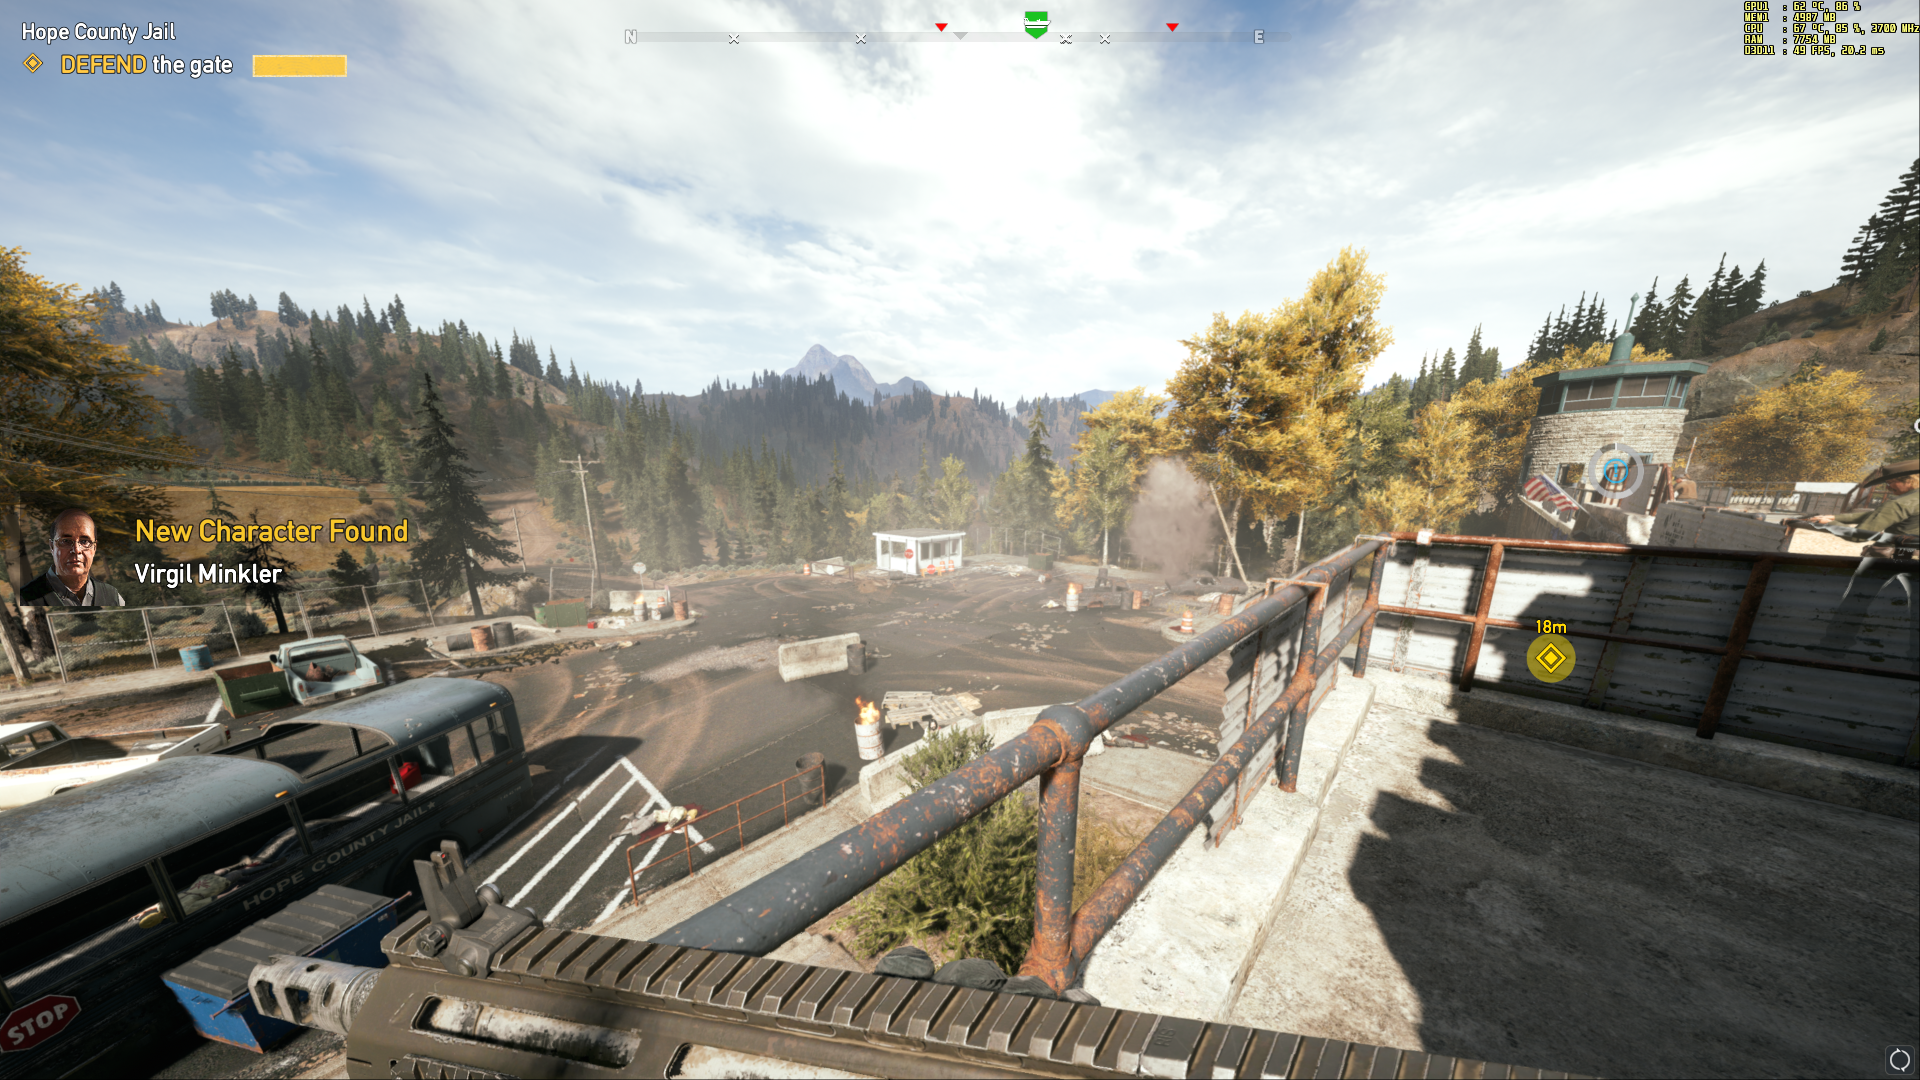 Poor perfomance on FAR CRY 5, gtx 1070 i54690 - PC Gaming